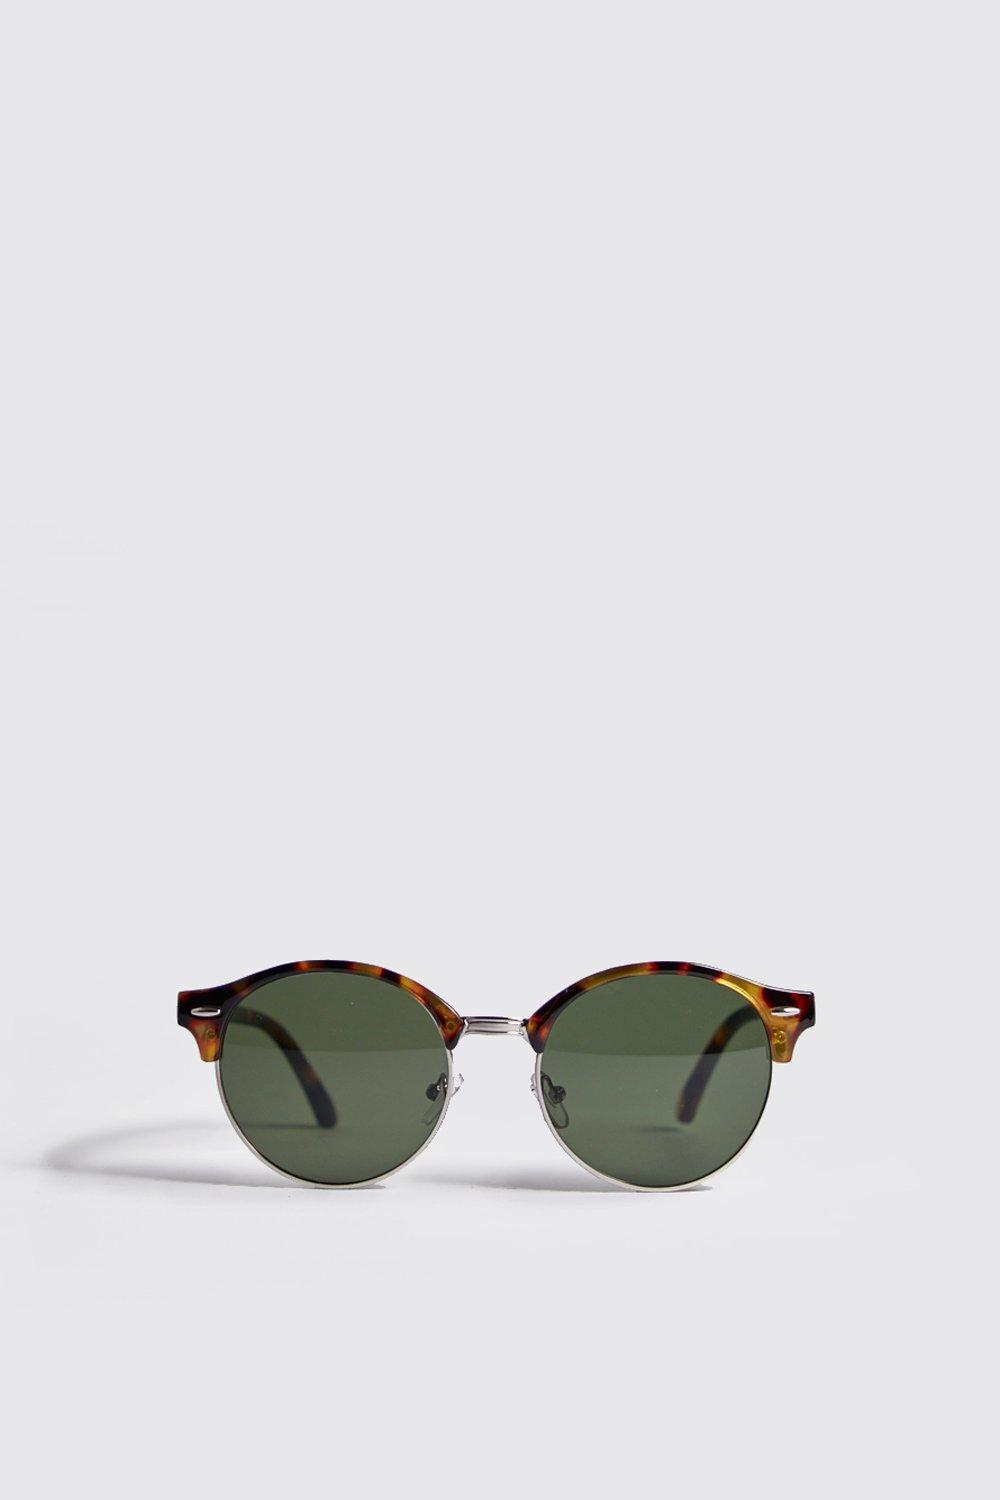 Round Lens Retro Sunglasses